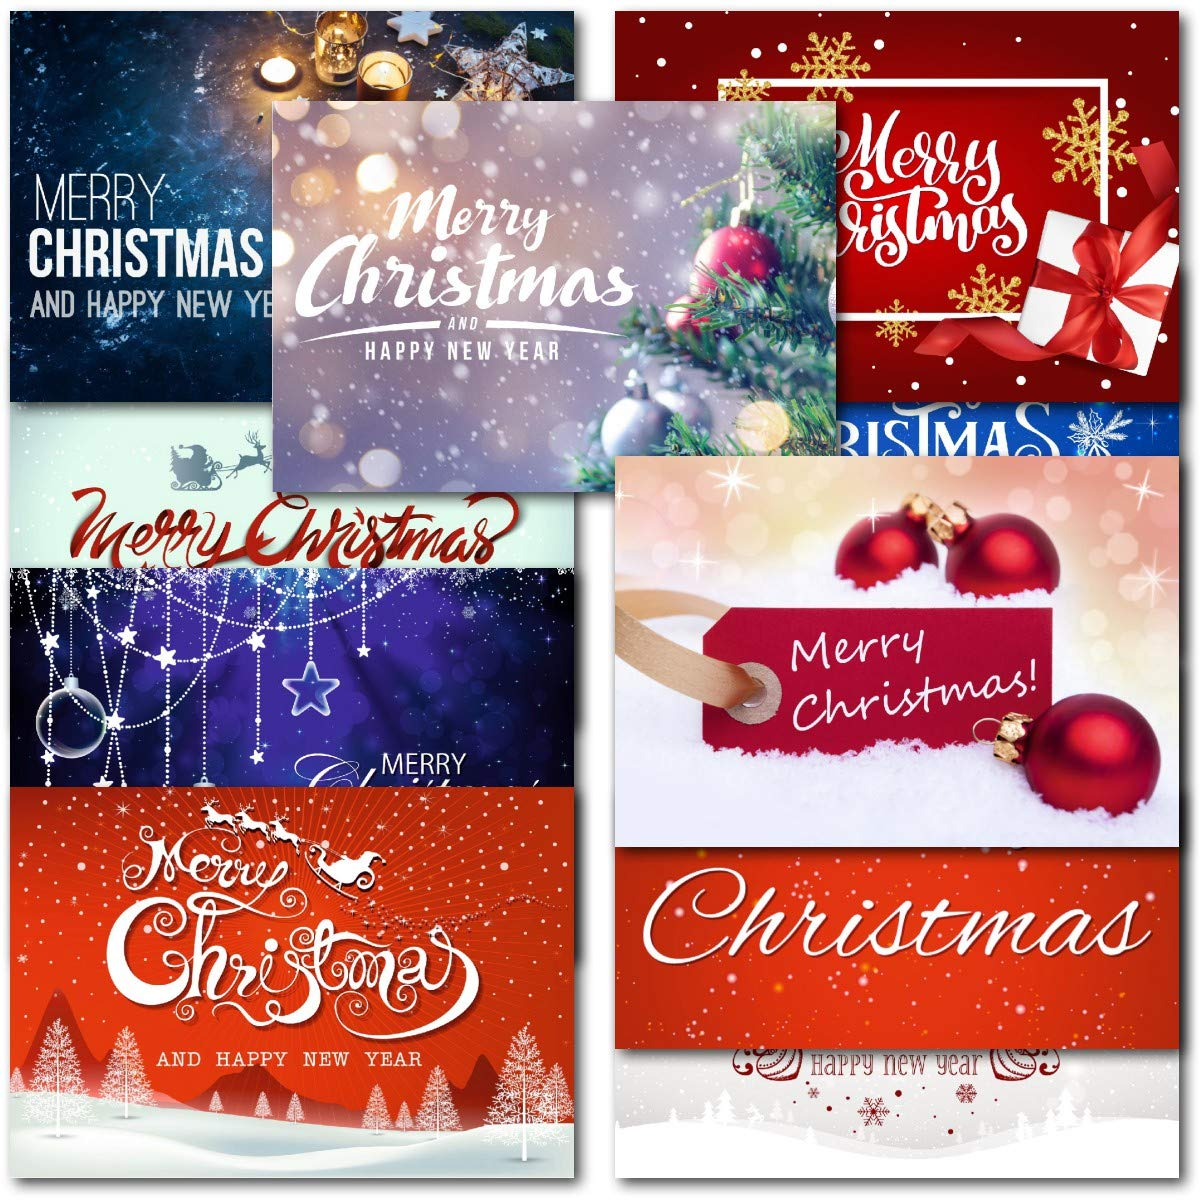 Pack of 30 Mixed Box Merry Christmas Premium Christmas Cards Doodlecards